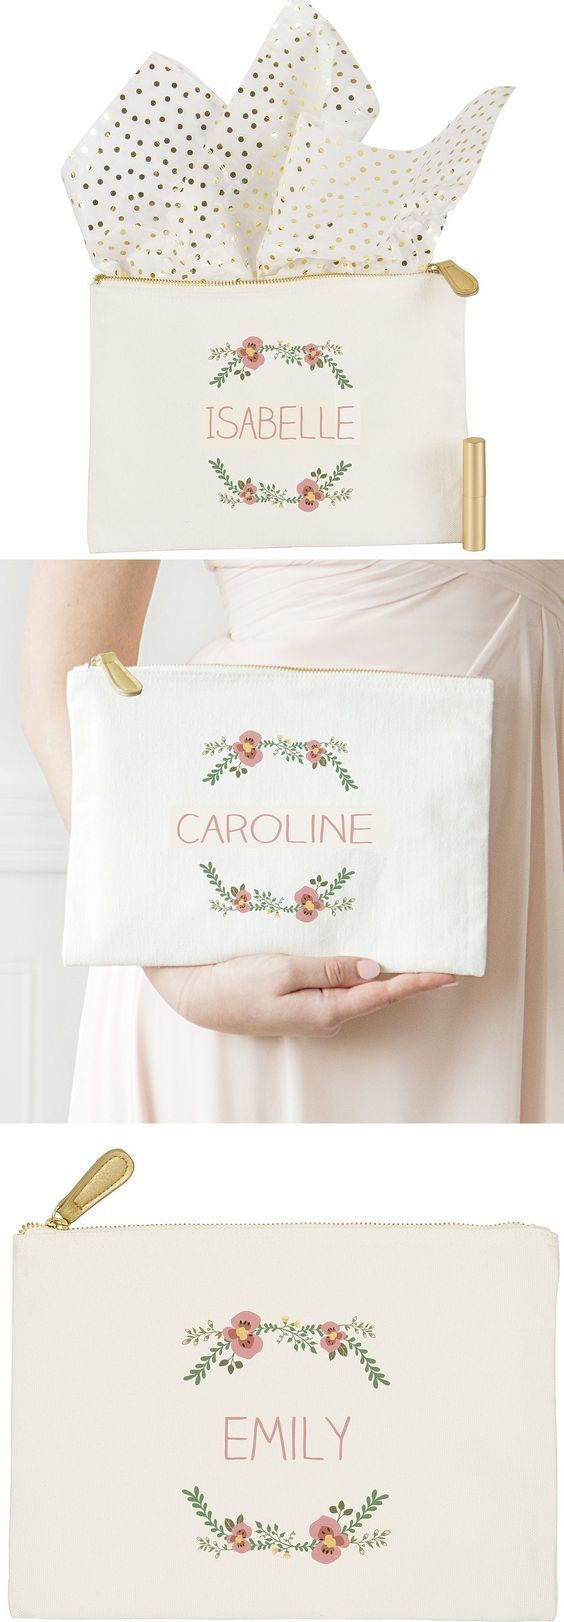 Bridal Party Idea - Have your bridesmaids carry floral design clutches instead of flowers or bouquets during your wedding ceremony. Personalized with each bridal party member's name or initial, your maid or matron of honor and bridesmaids will matching clutches to use during your wedding and every day thereafter. Add a personalized clutch to a tote bag with a few wedding day essentials for bridesmaids gifts that are memorable and practical.